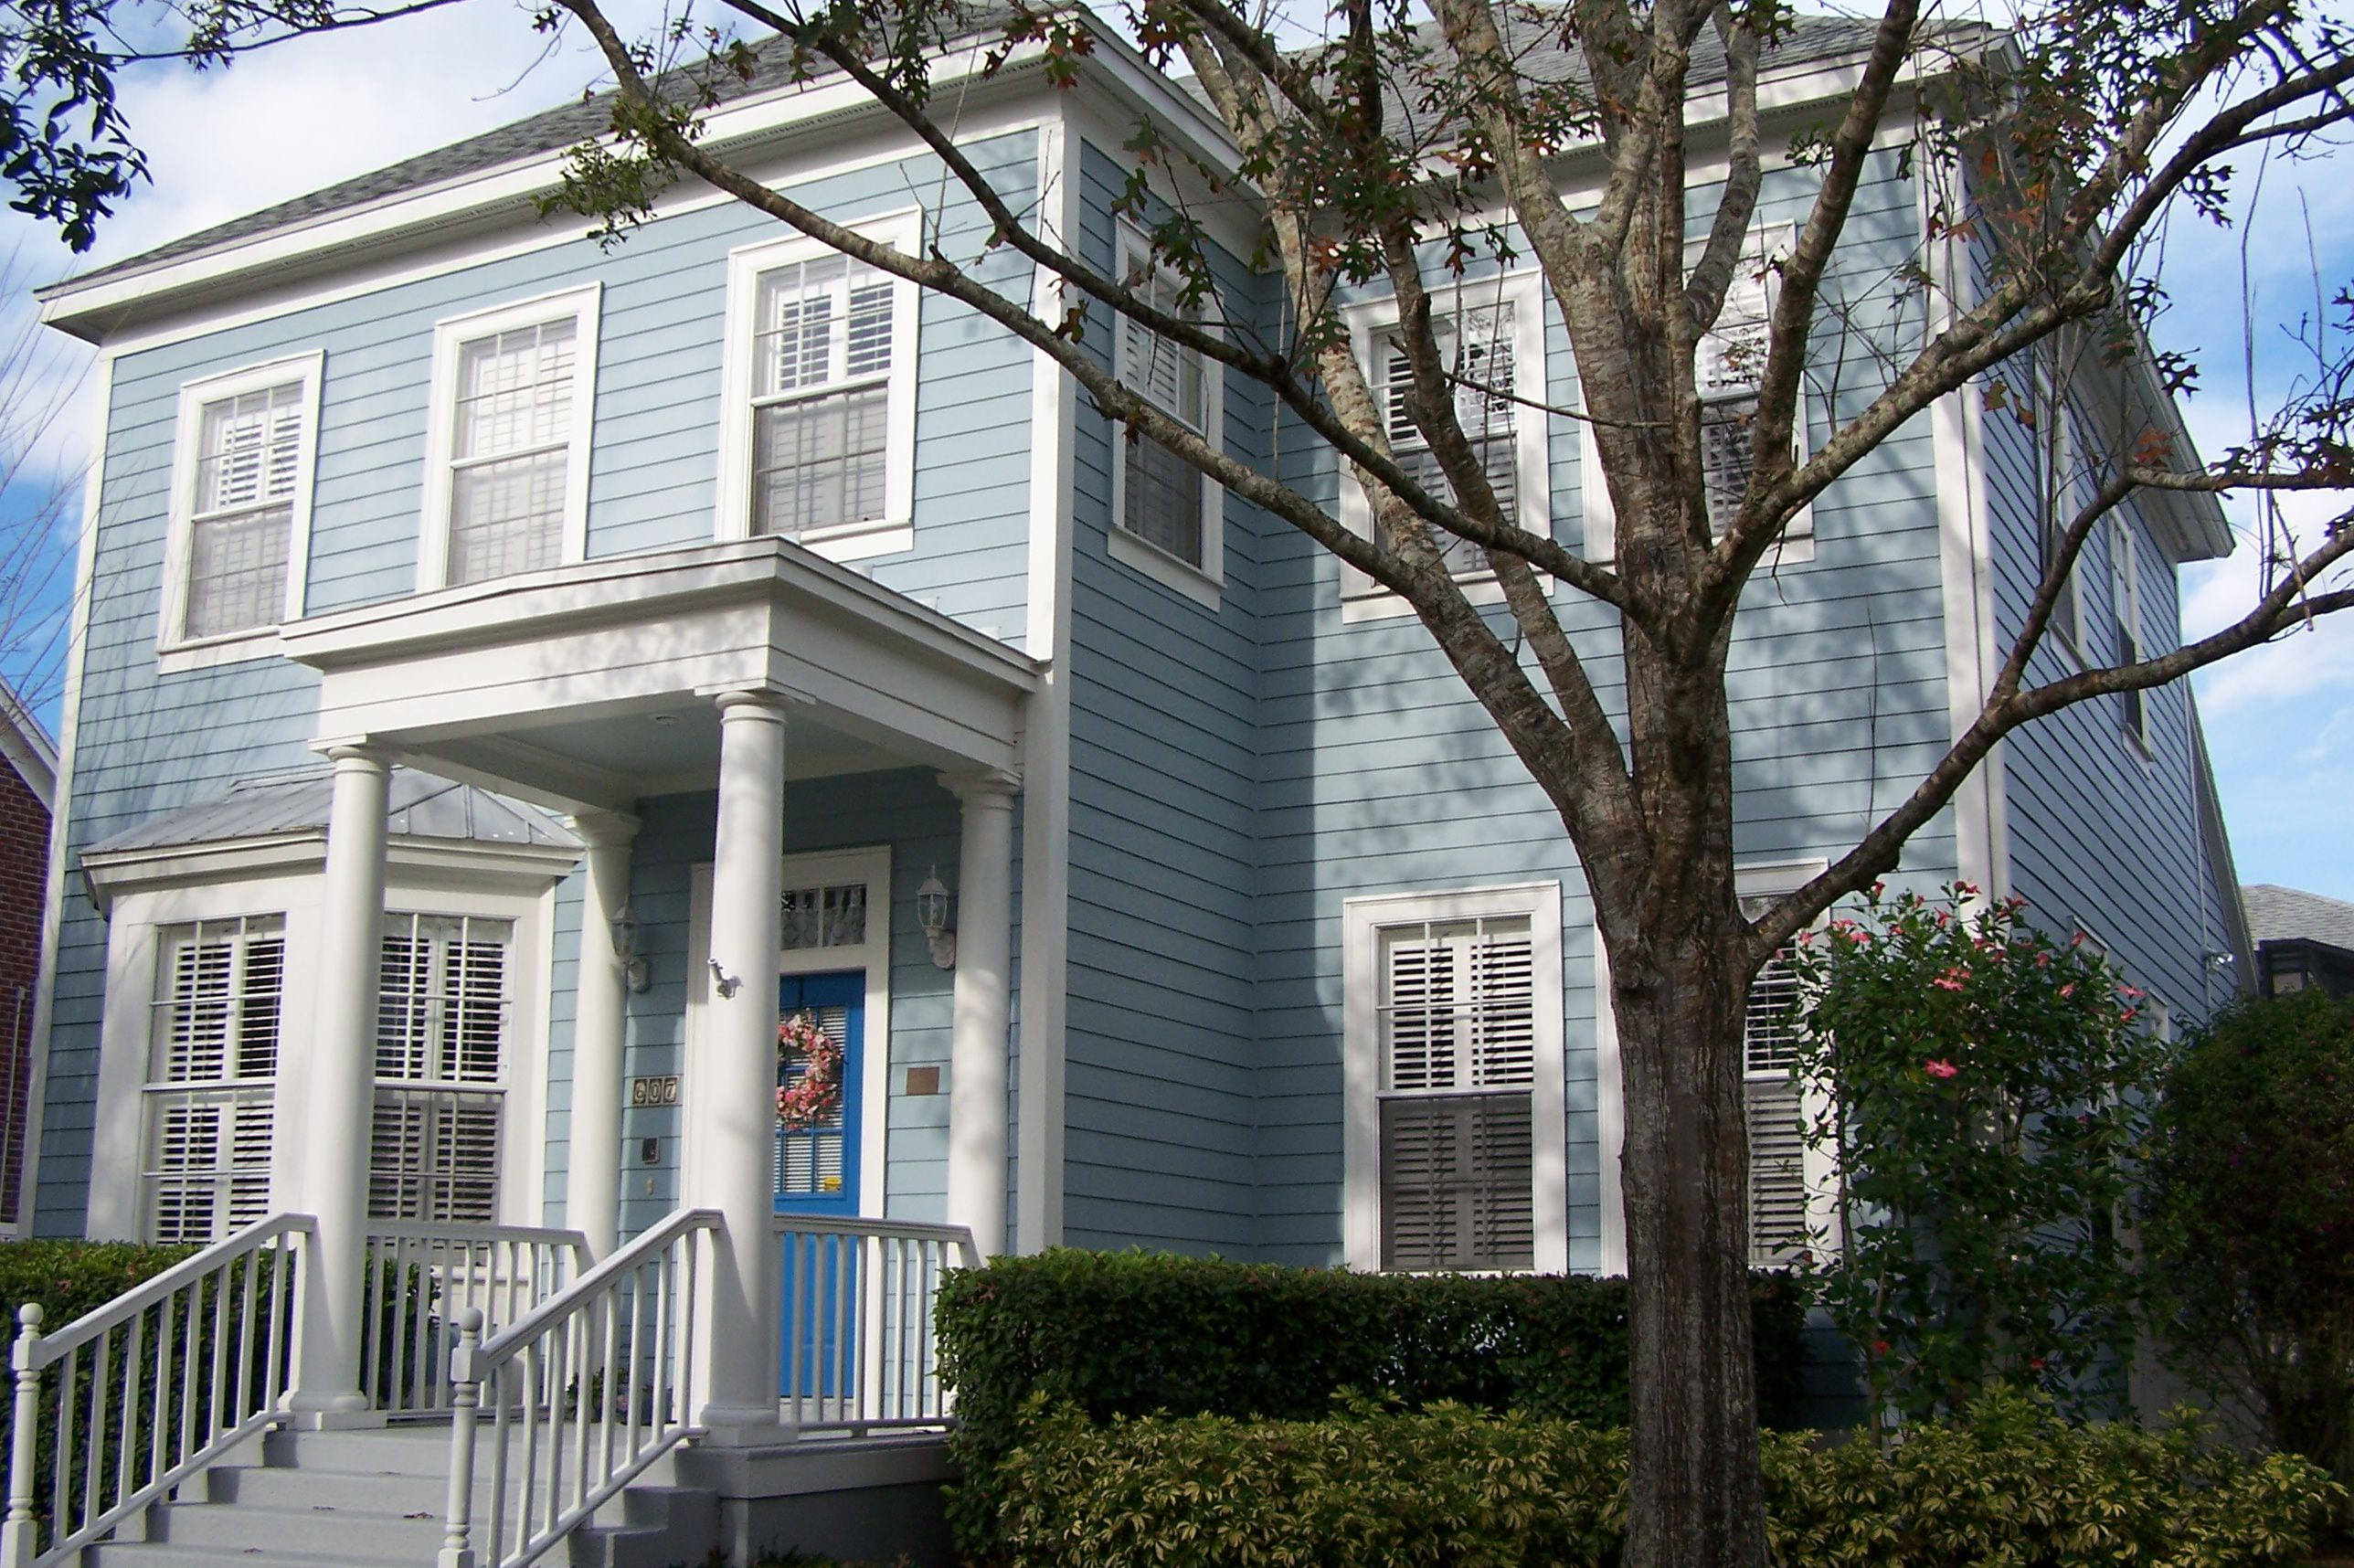 Greek-revival porch on a blue-sided house